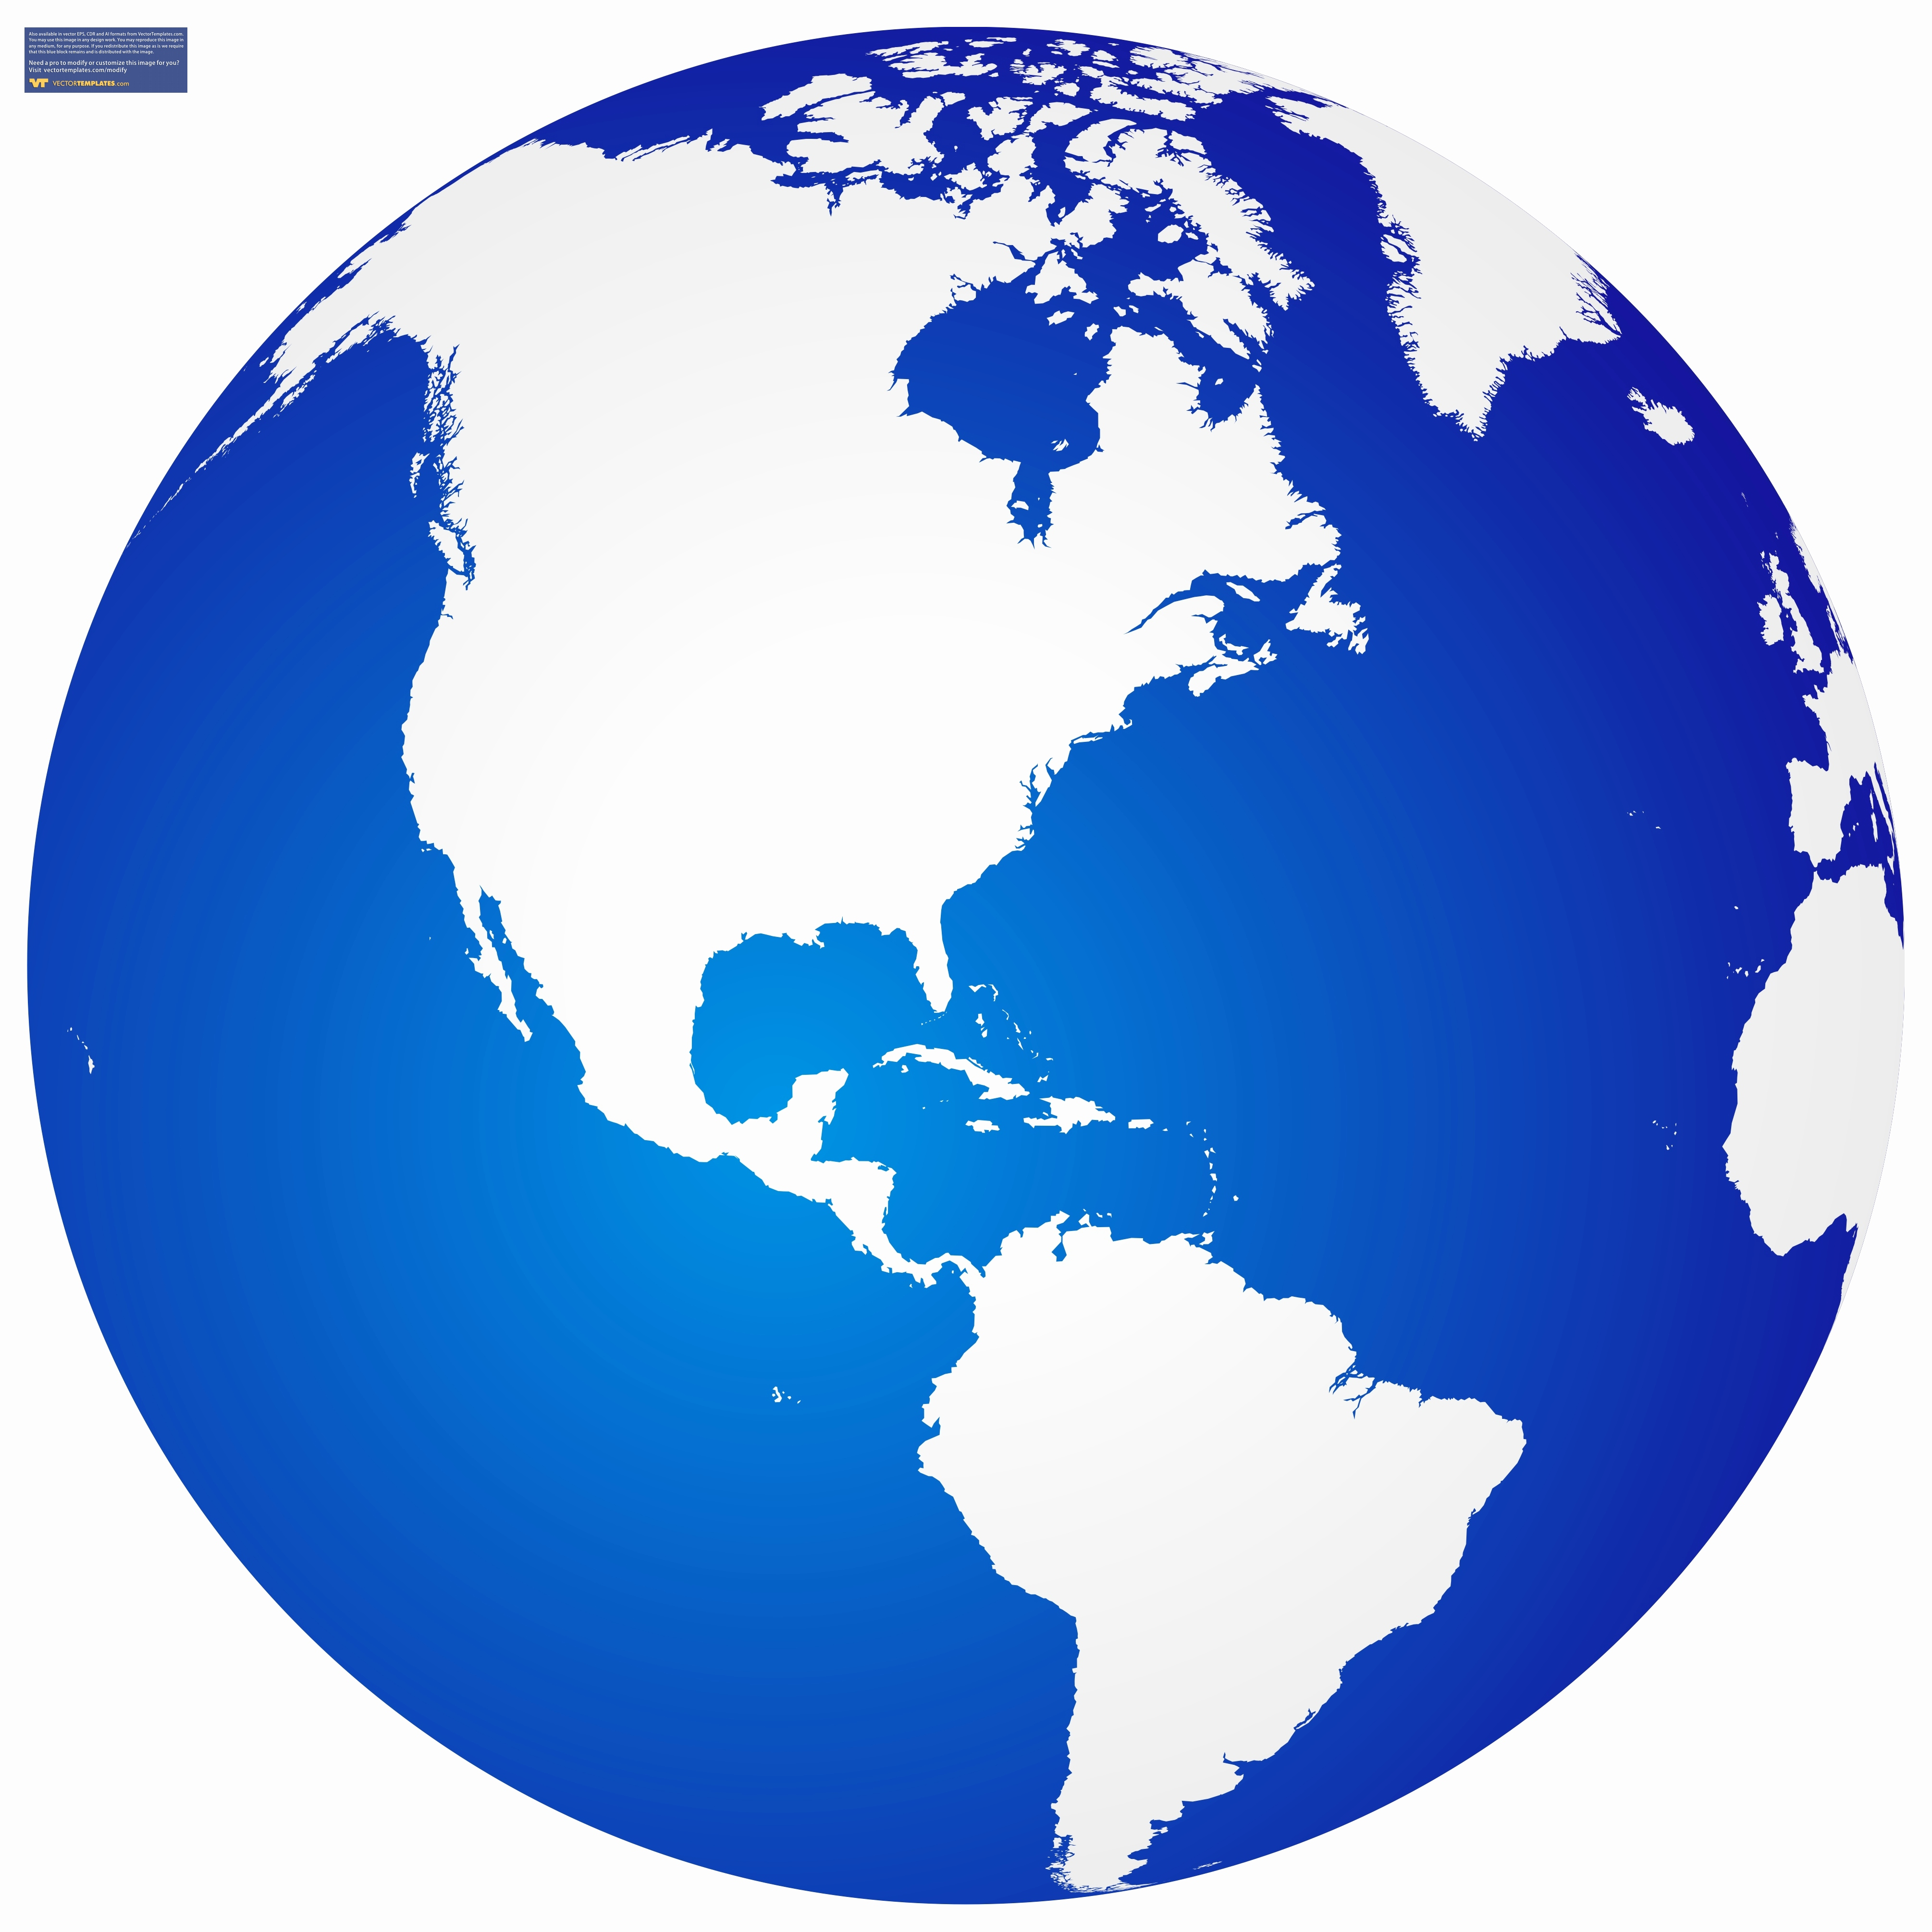 4021x4021 Free Globe Pictures Best Of Earth Globe Clip Art